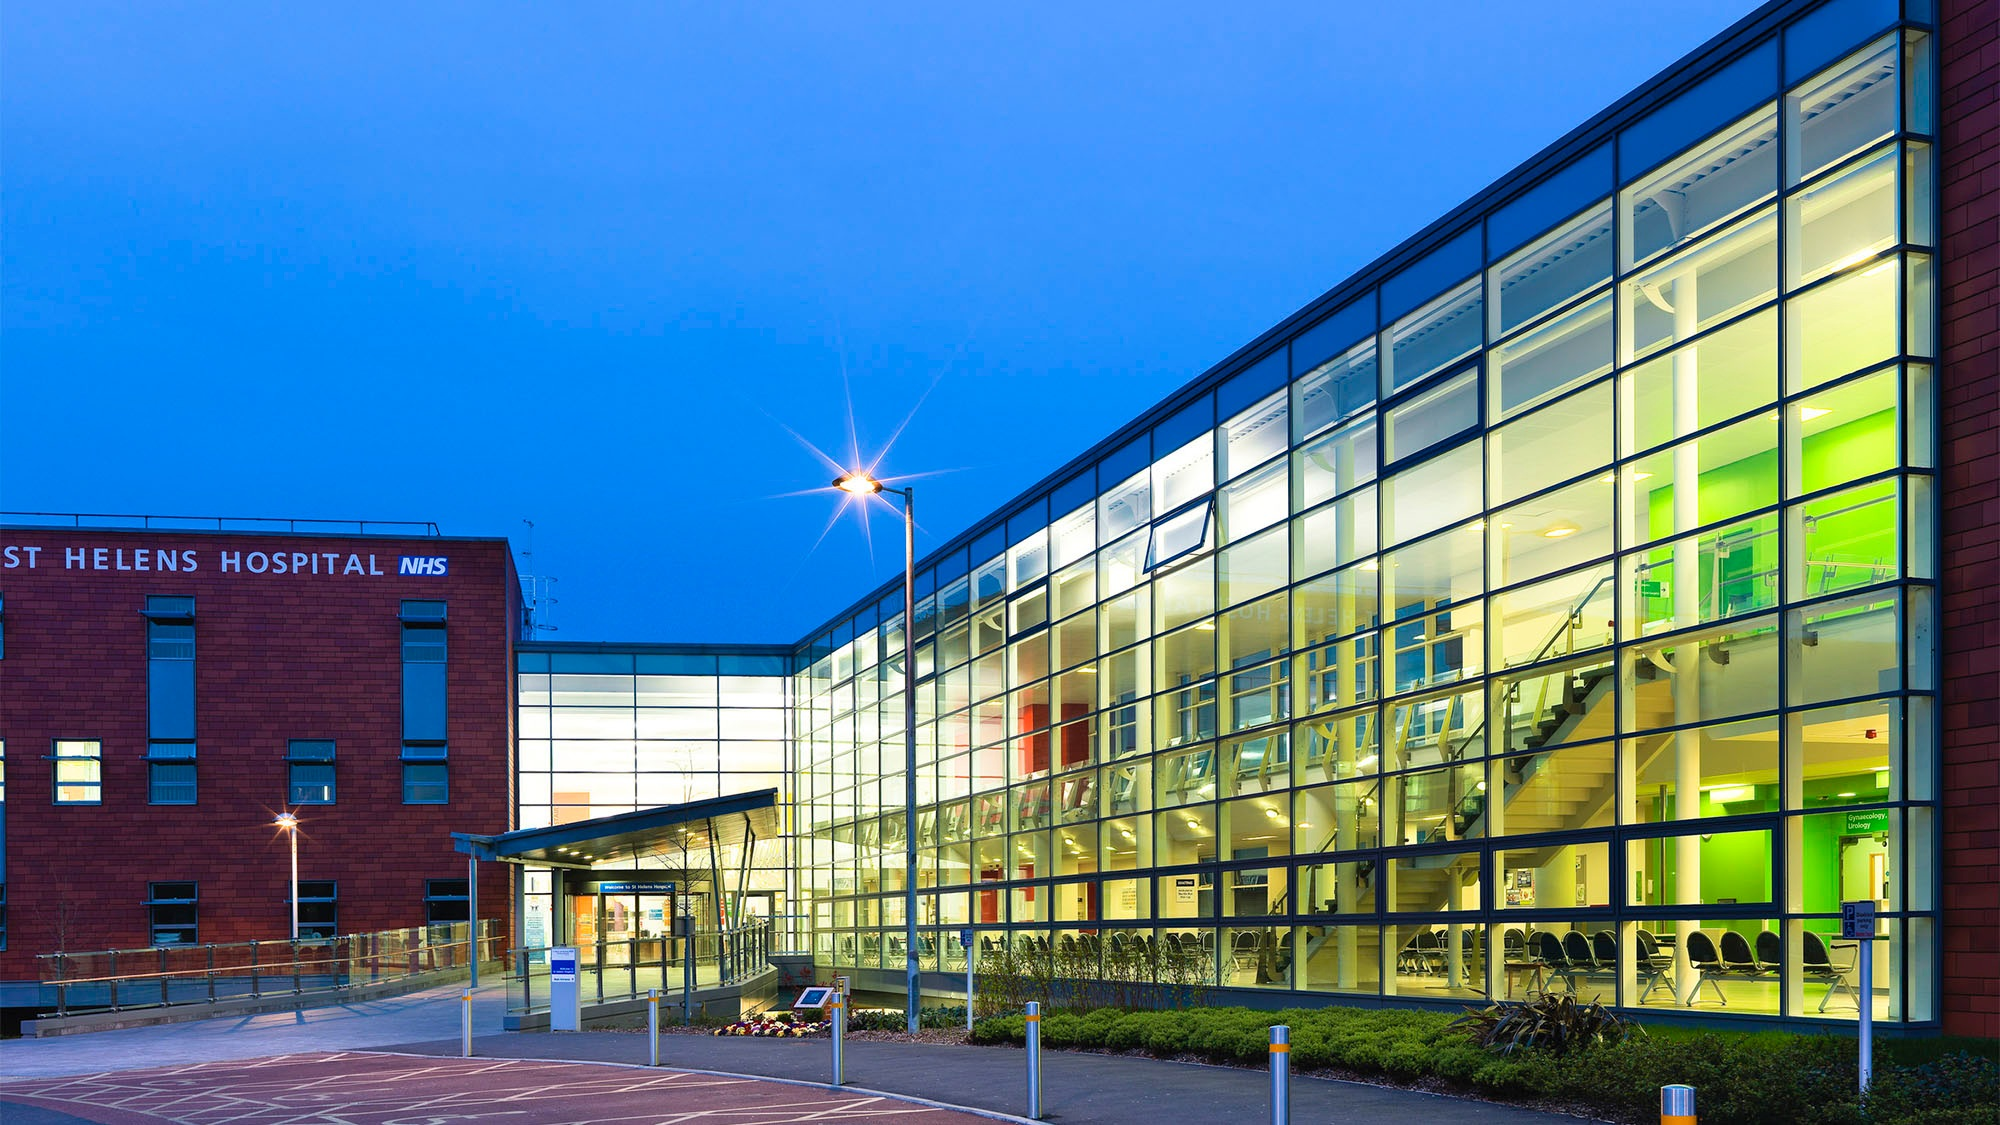 HEALTHCARE BUILDINGS - With a number of hospital projects and residential homes as our valued clients, our knowledge and experience of the Healthcare & Wellbeing sector is testimony to our success.